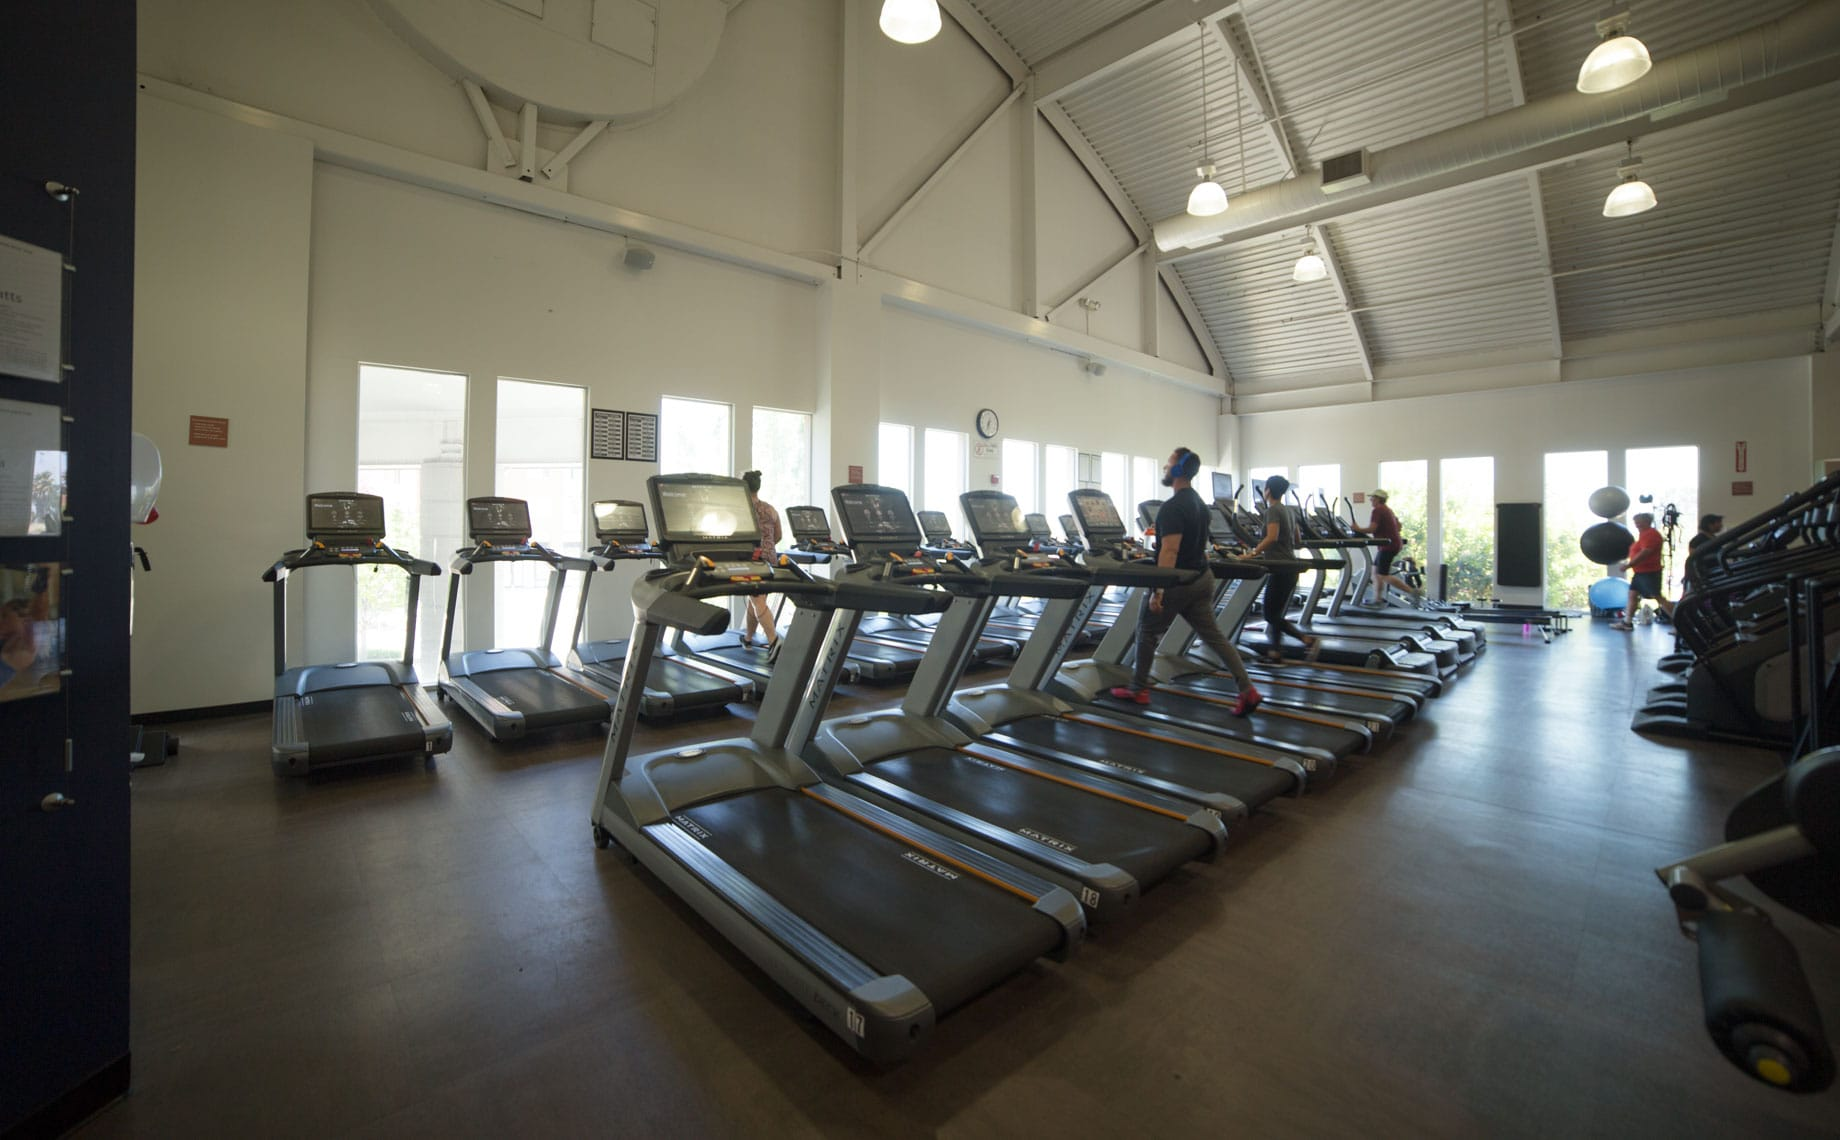 Treadmills at the PJCC Fitness Center